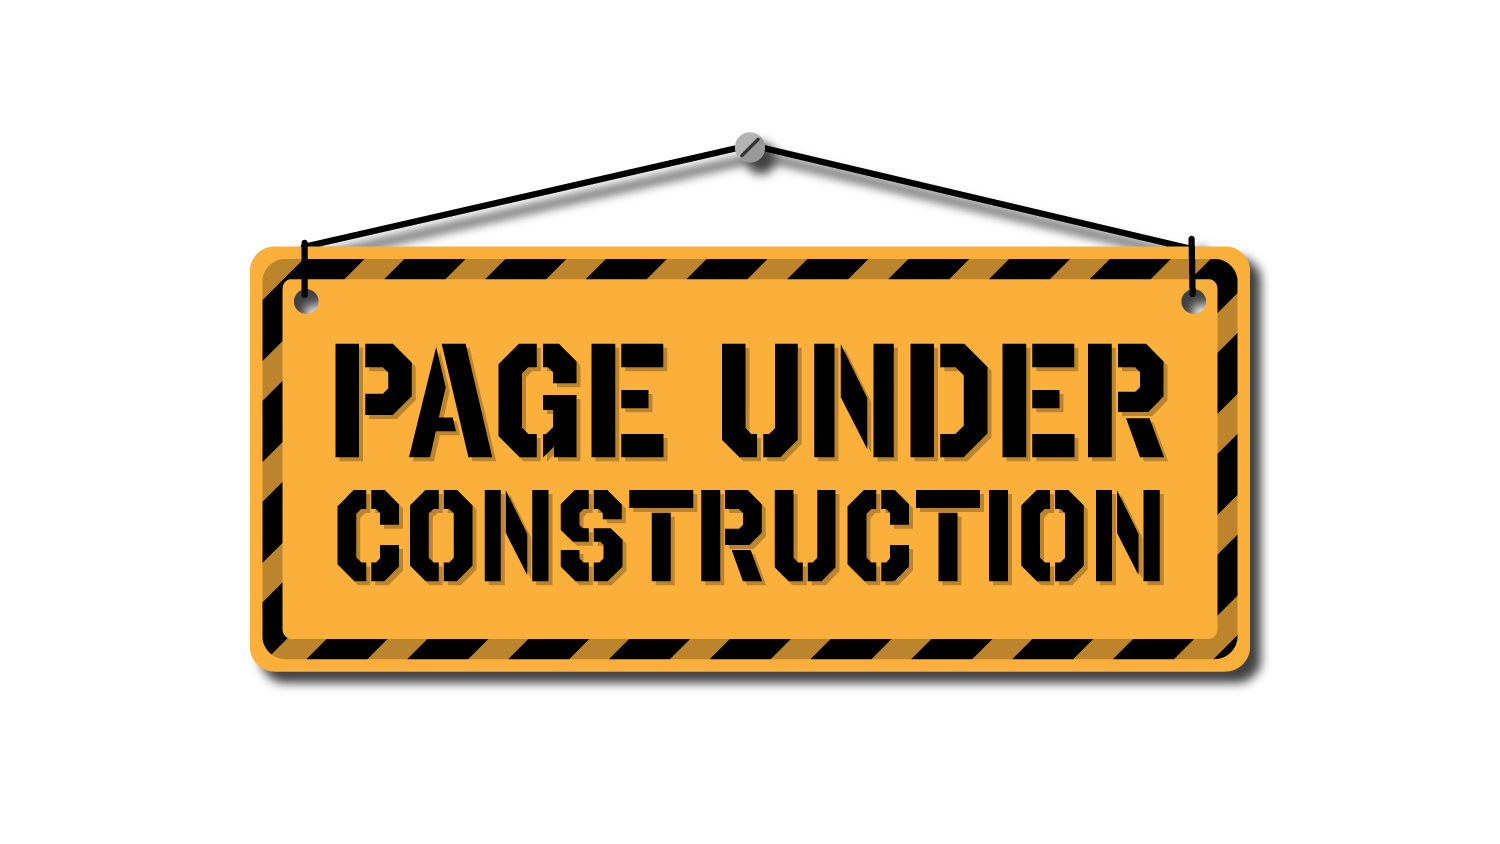 Page Under Construction.